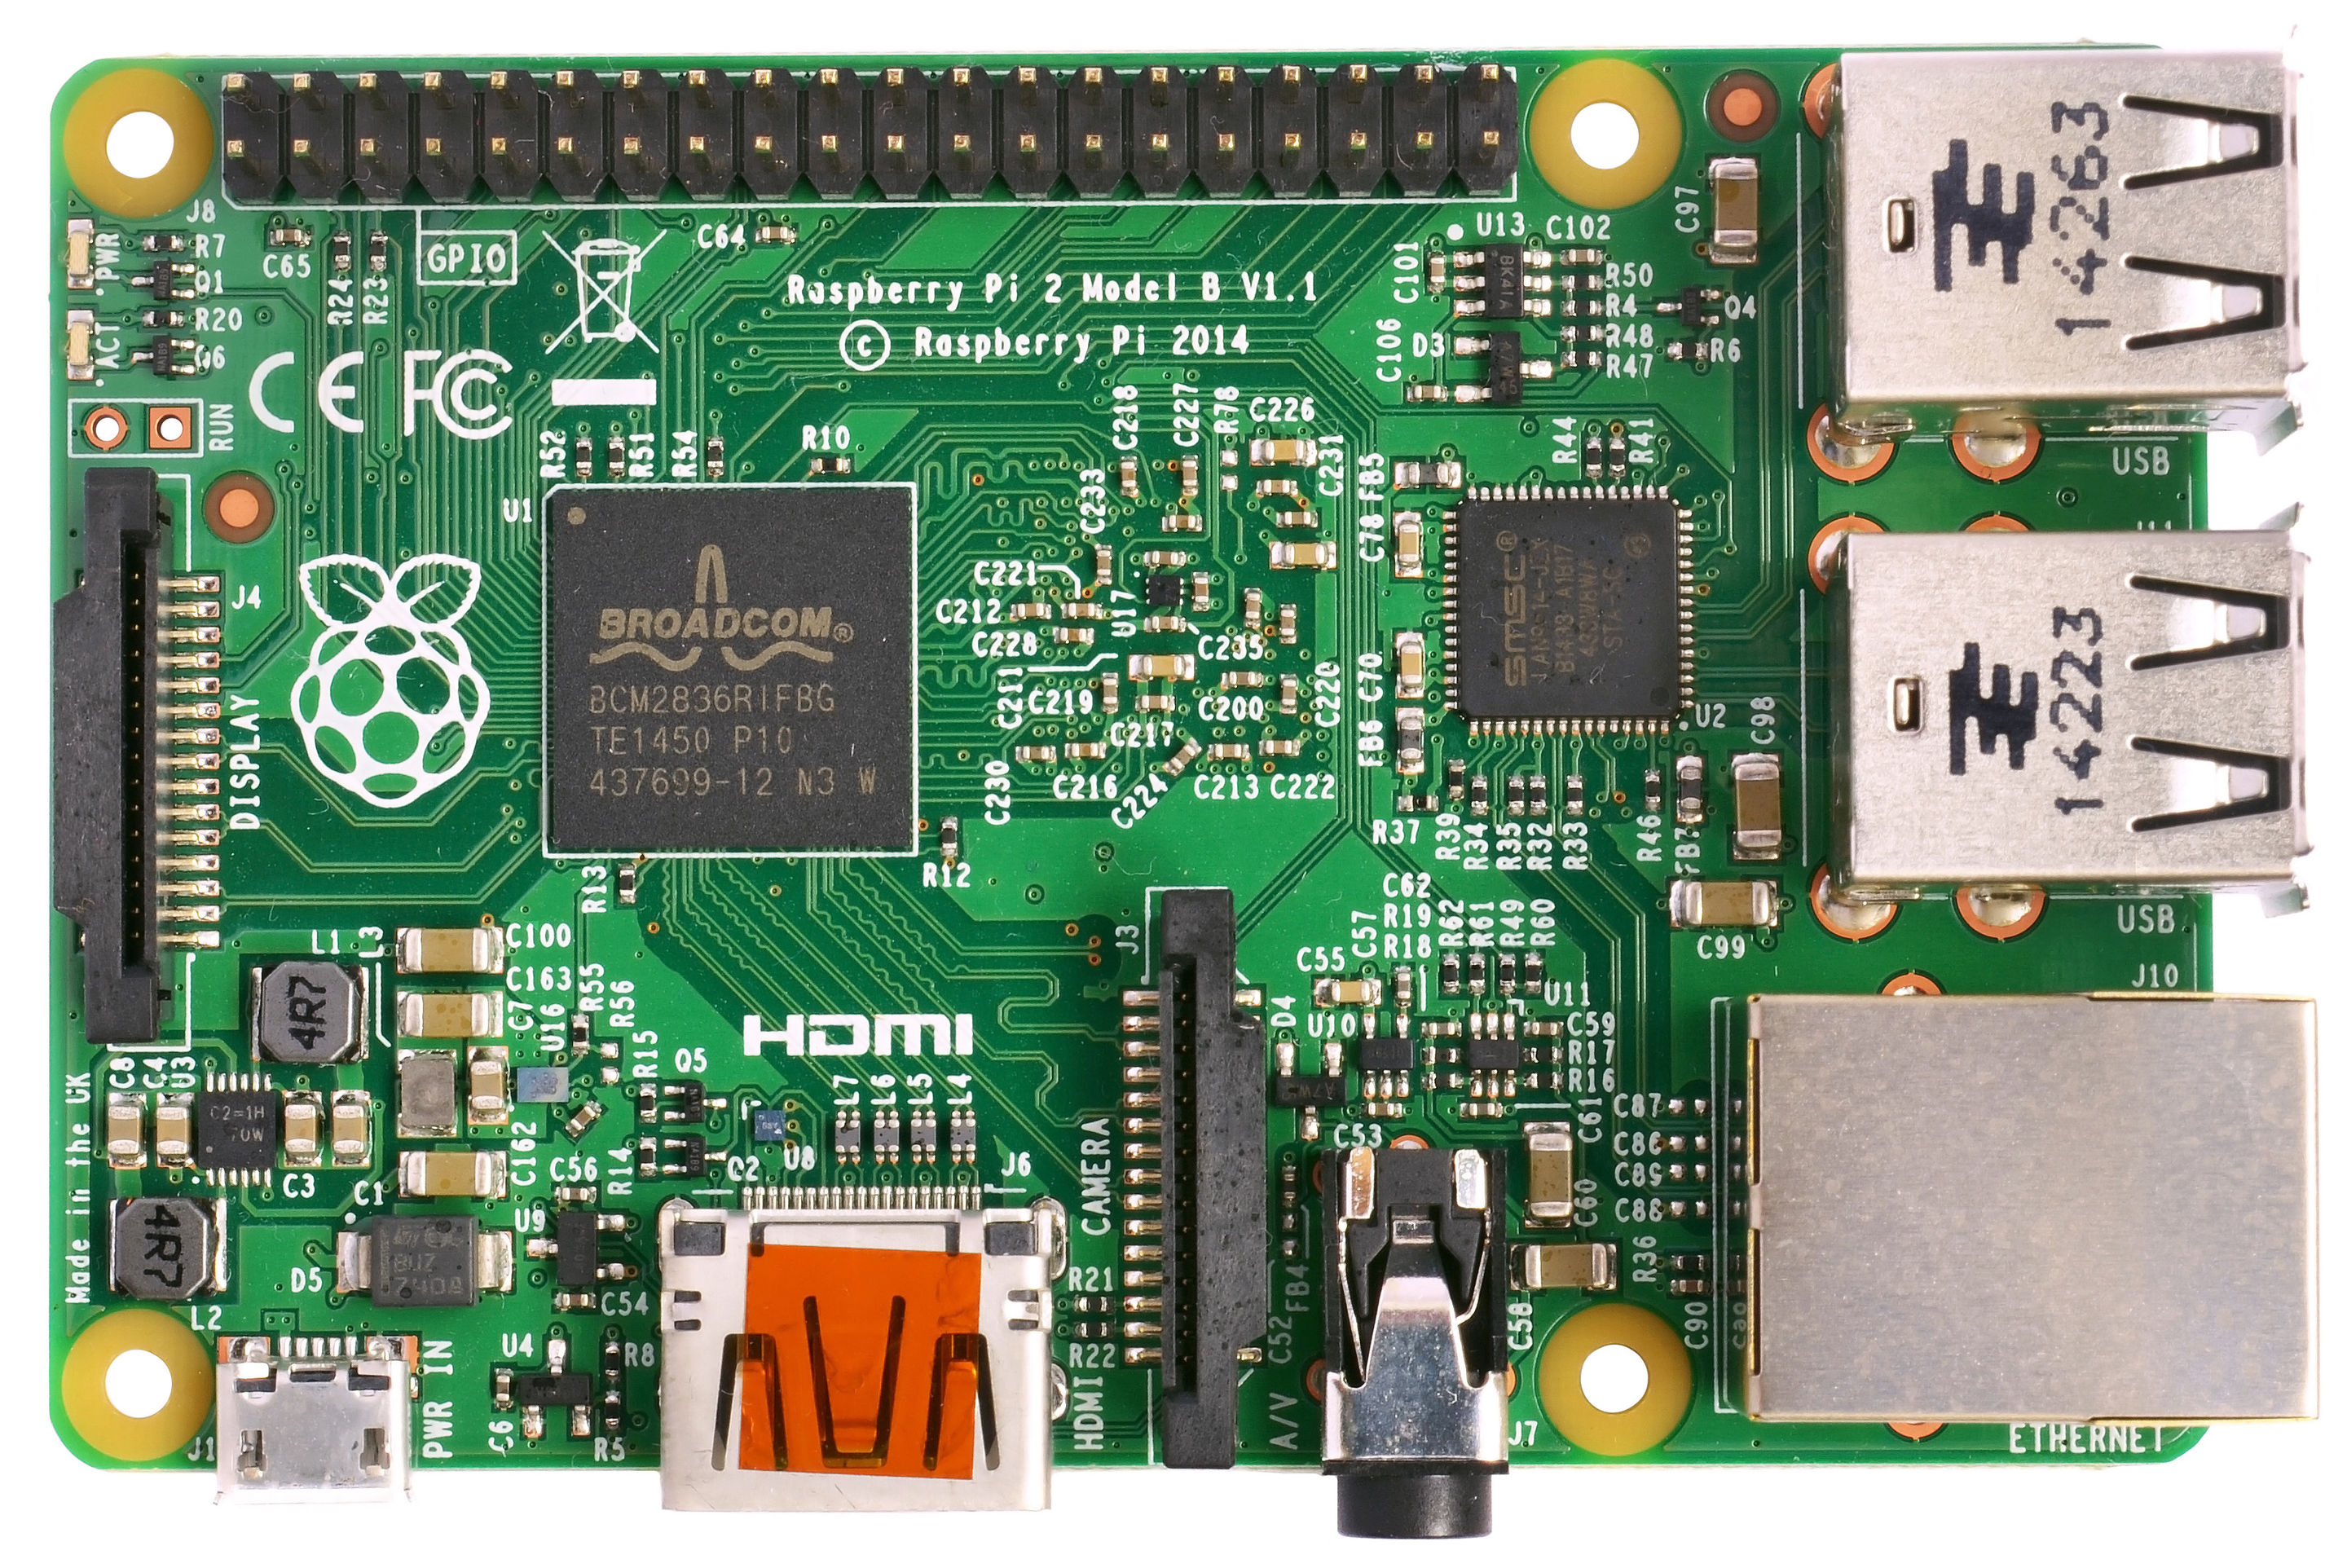 Adacore Introduces Gnat Gpl 2015 For The Raspberry Pi 2 Wiringpi Open Source Introducesgnat